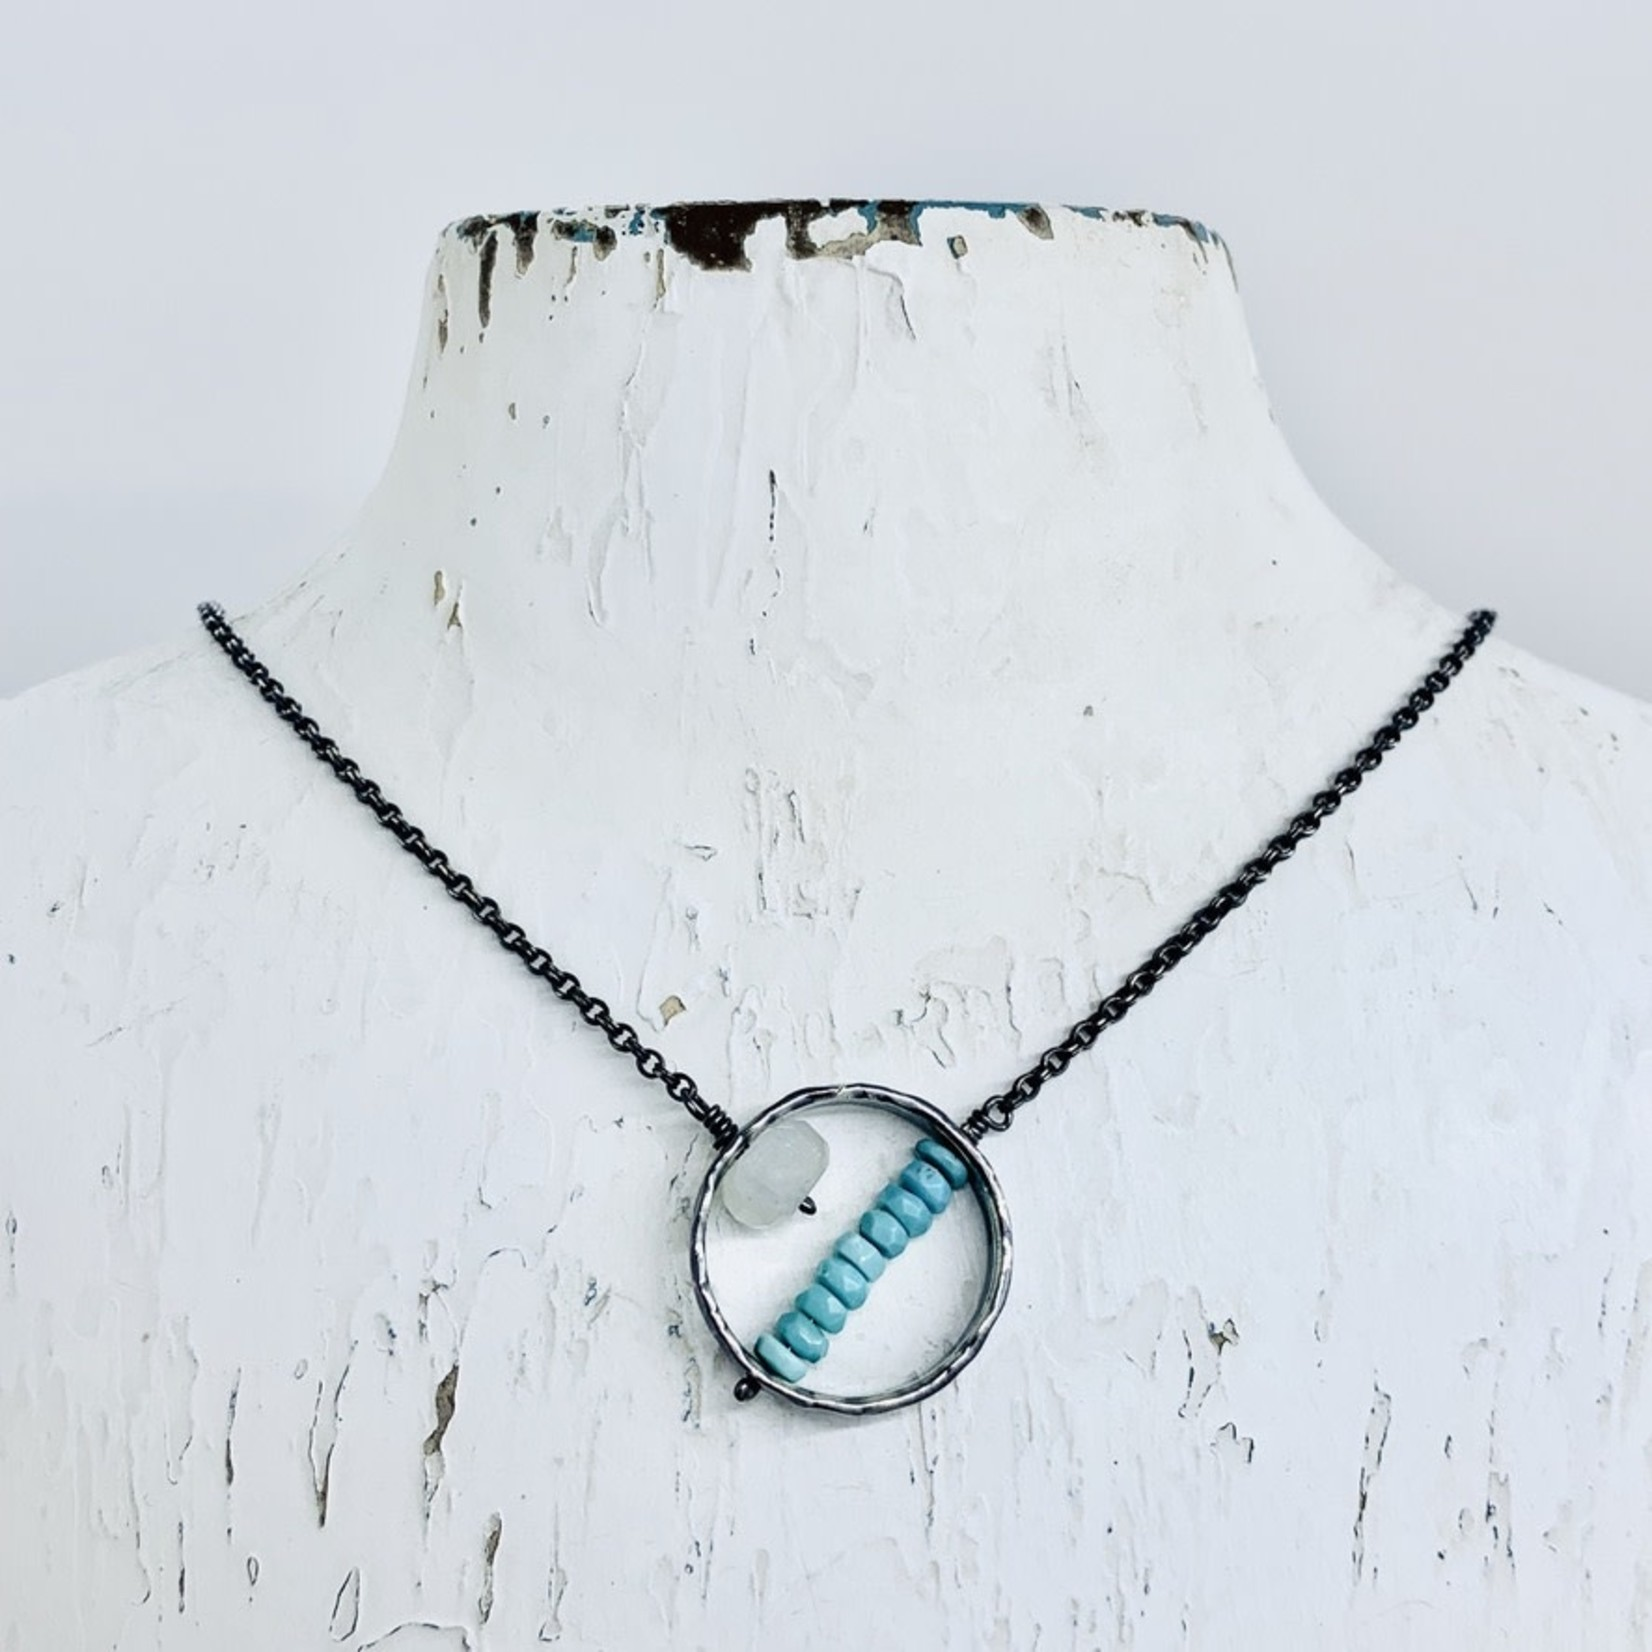 EVANKNOX Handmade Necklace with oxidized hammered ring, rainbow moonstone rondelle, stack sleeping beauty turquoise